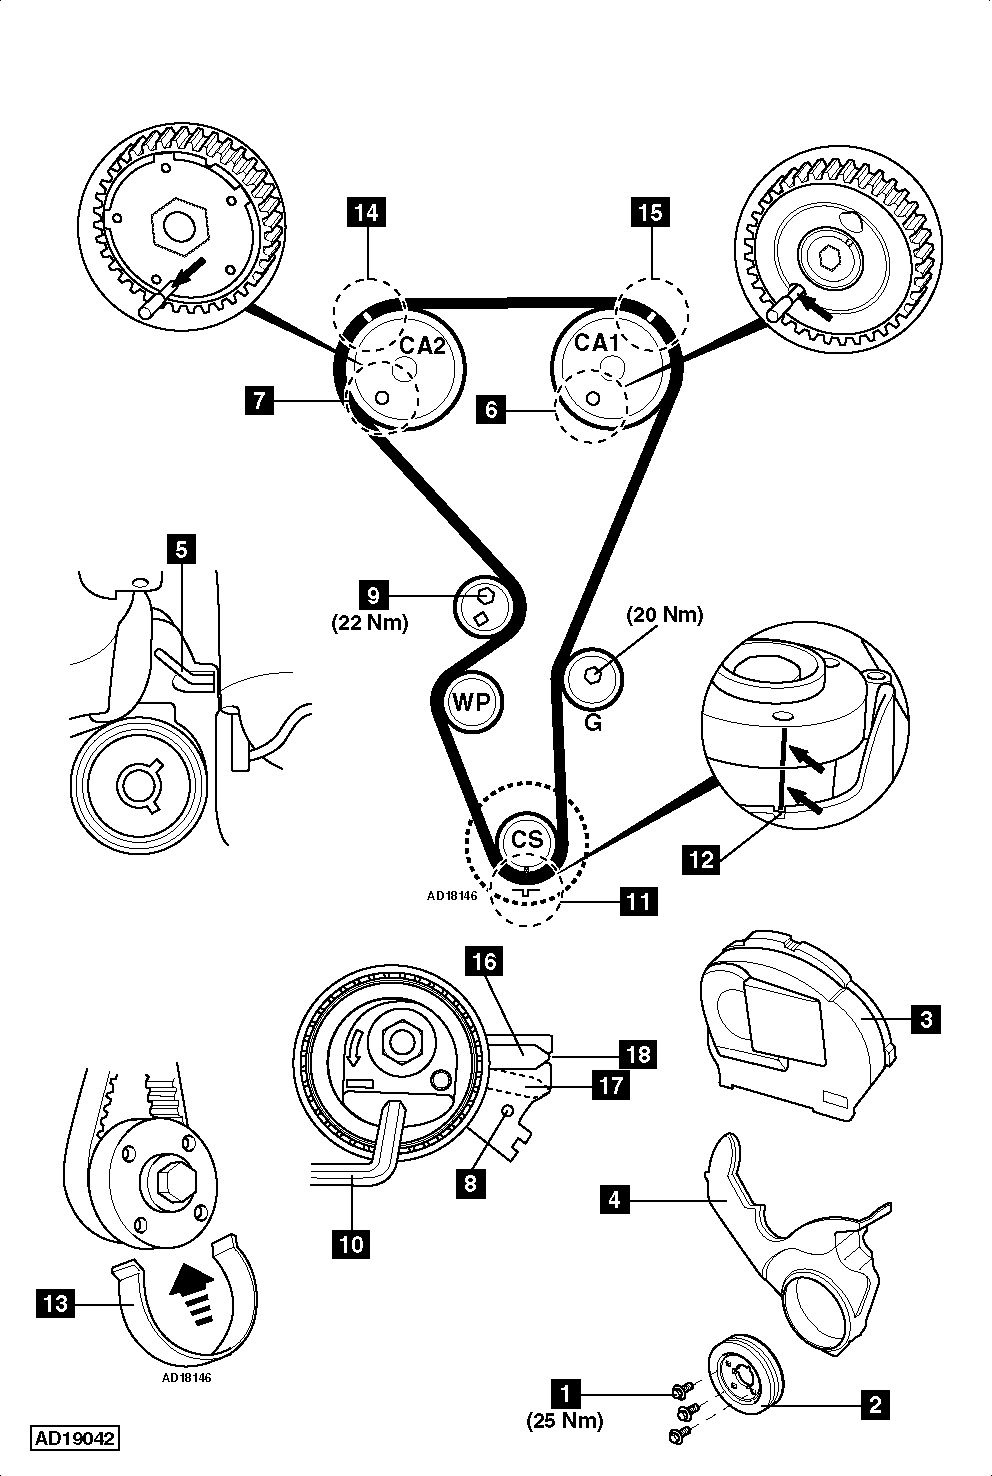 1994 Jeep Cherokee Camshaft Position Sensor Location on 1995 dodge ram 1500 radio wiring diagram